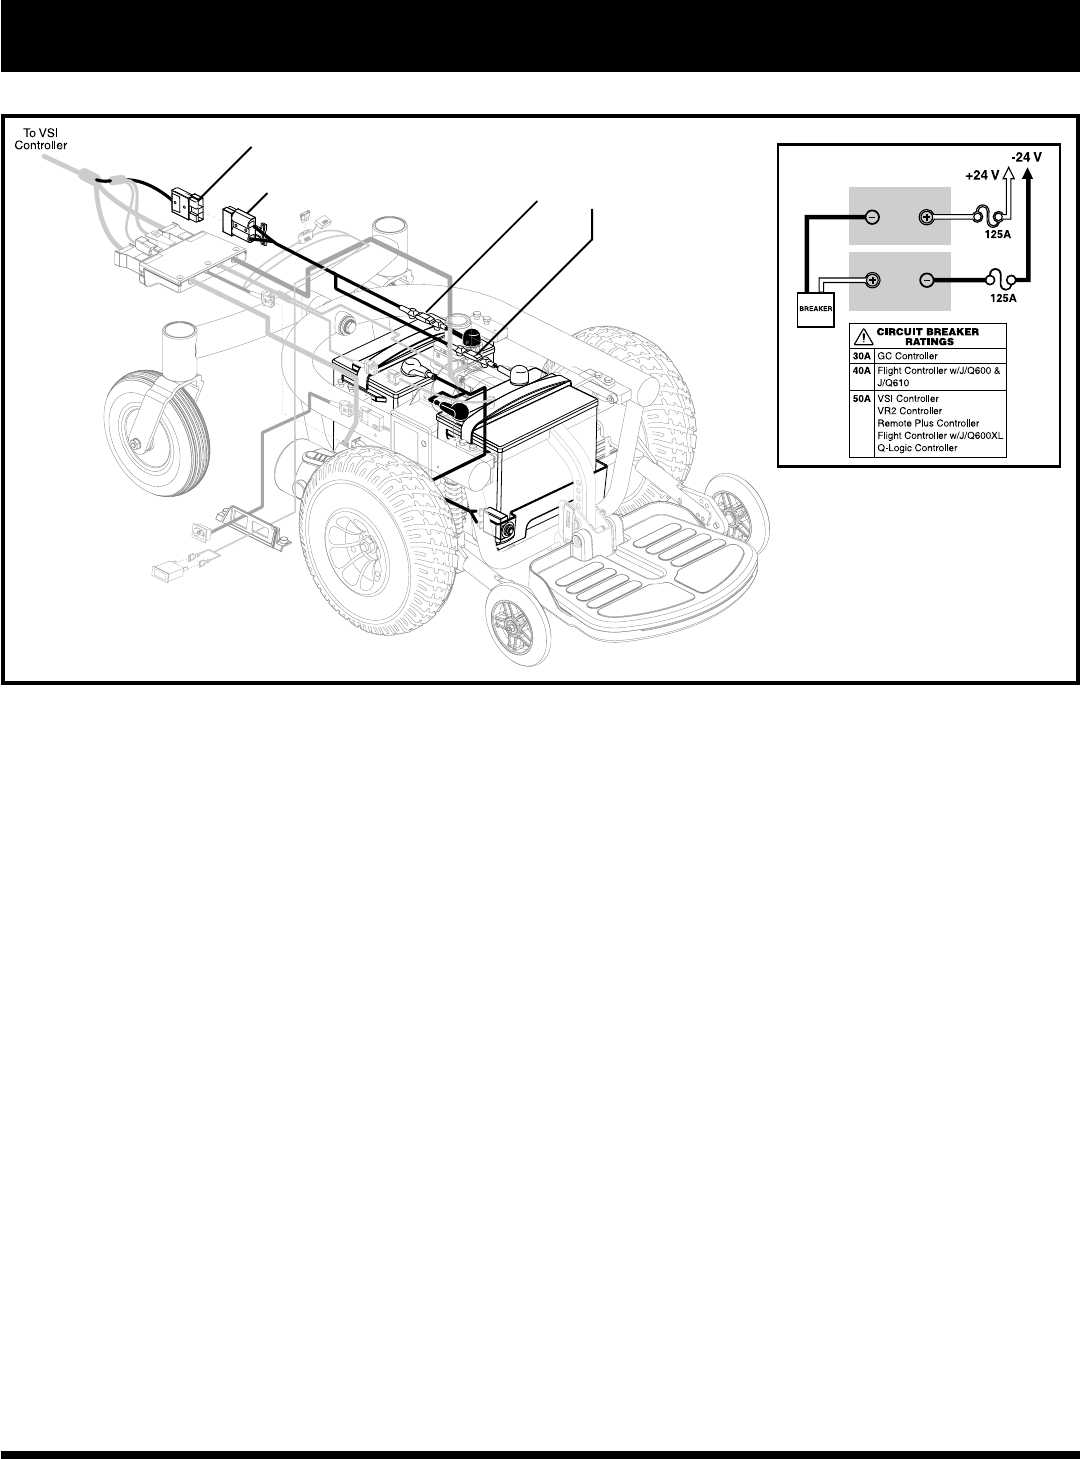 hight resolution of jazzy 1103 wiring diagram wiring diagram blogpage 44 of pride mobility mobility aid 1103 ultra user